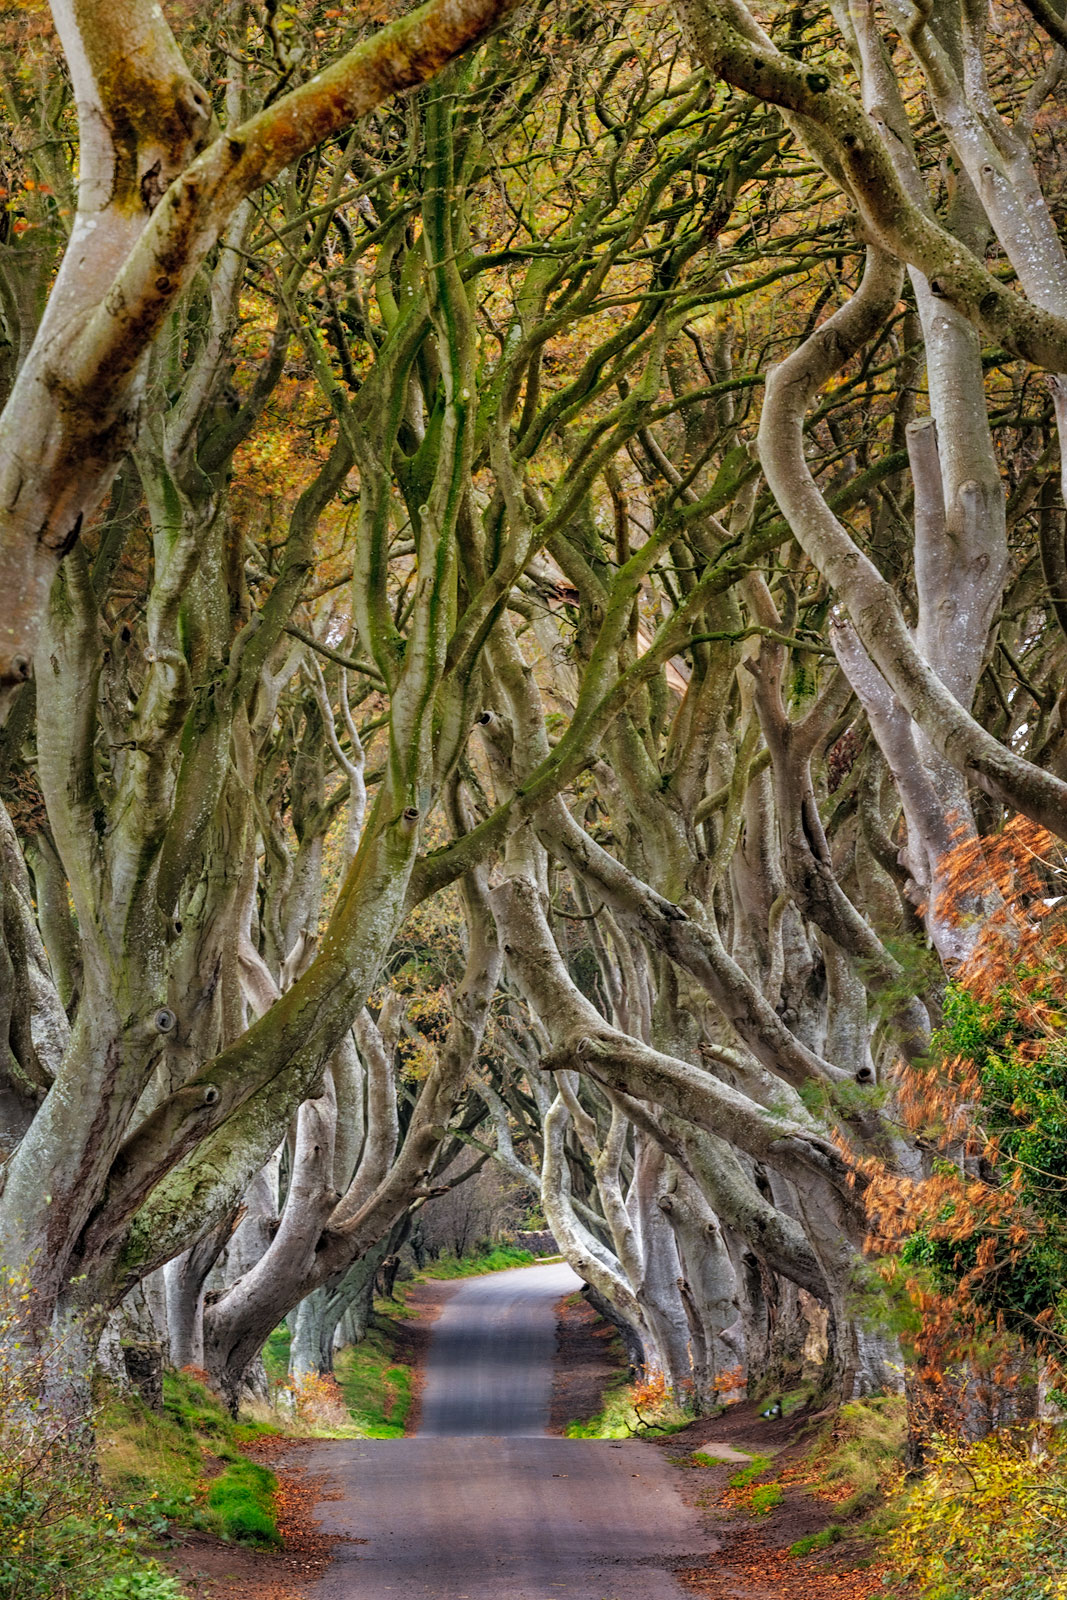 The Dark Hedges in County Antrim, Northern Ireland